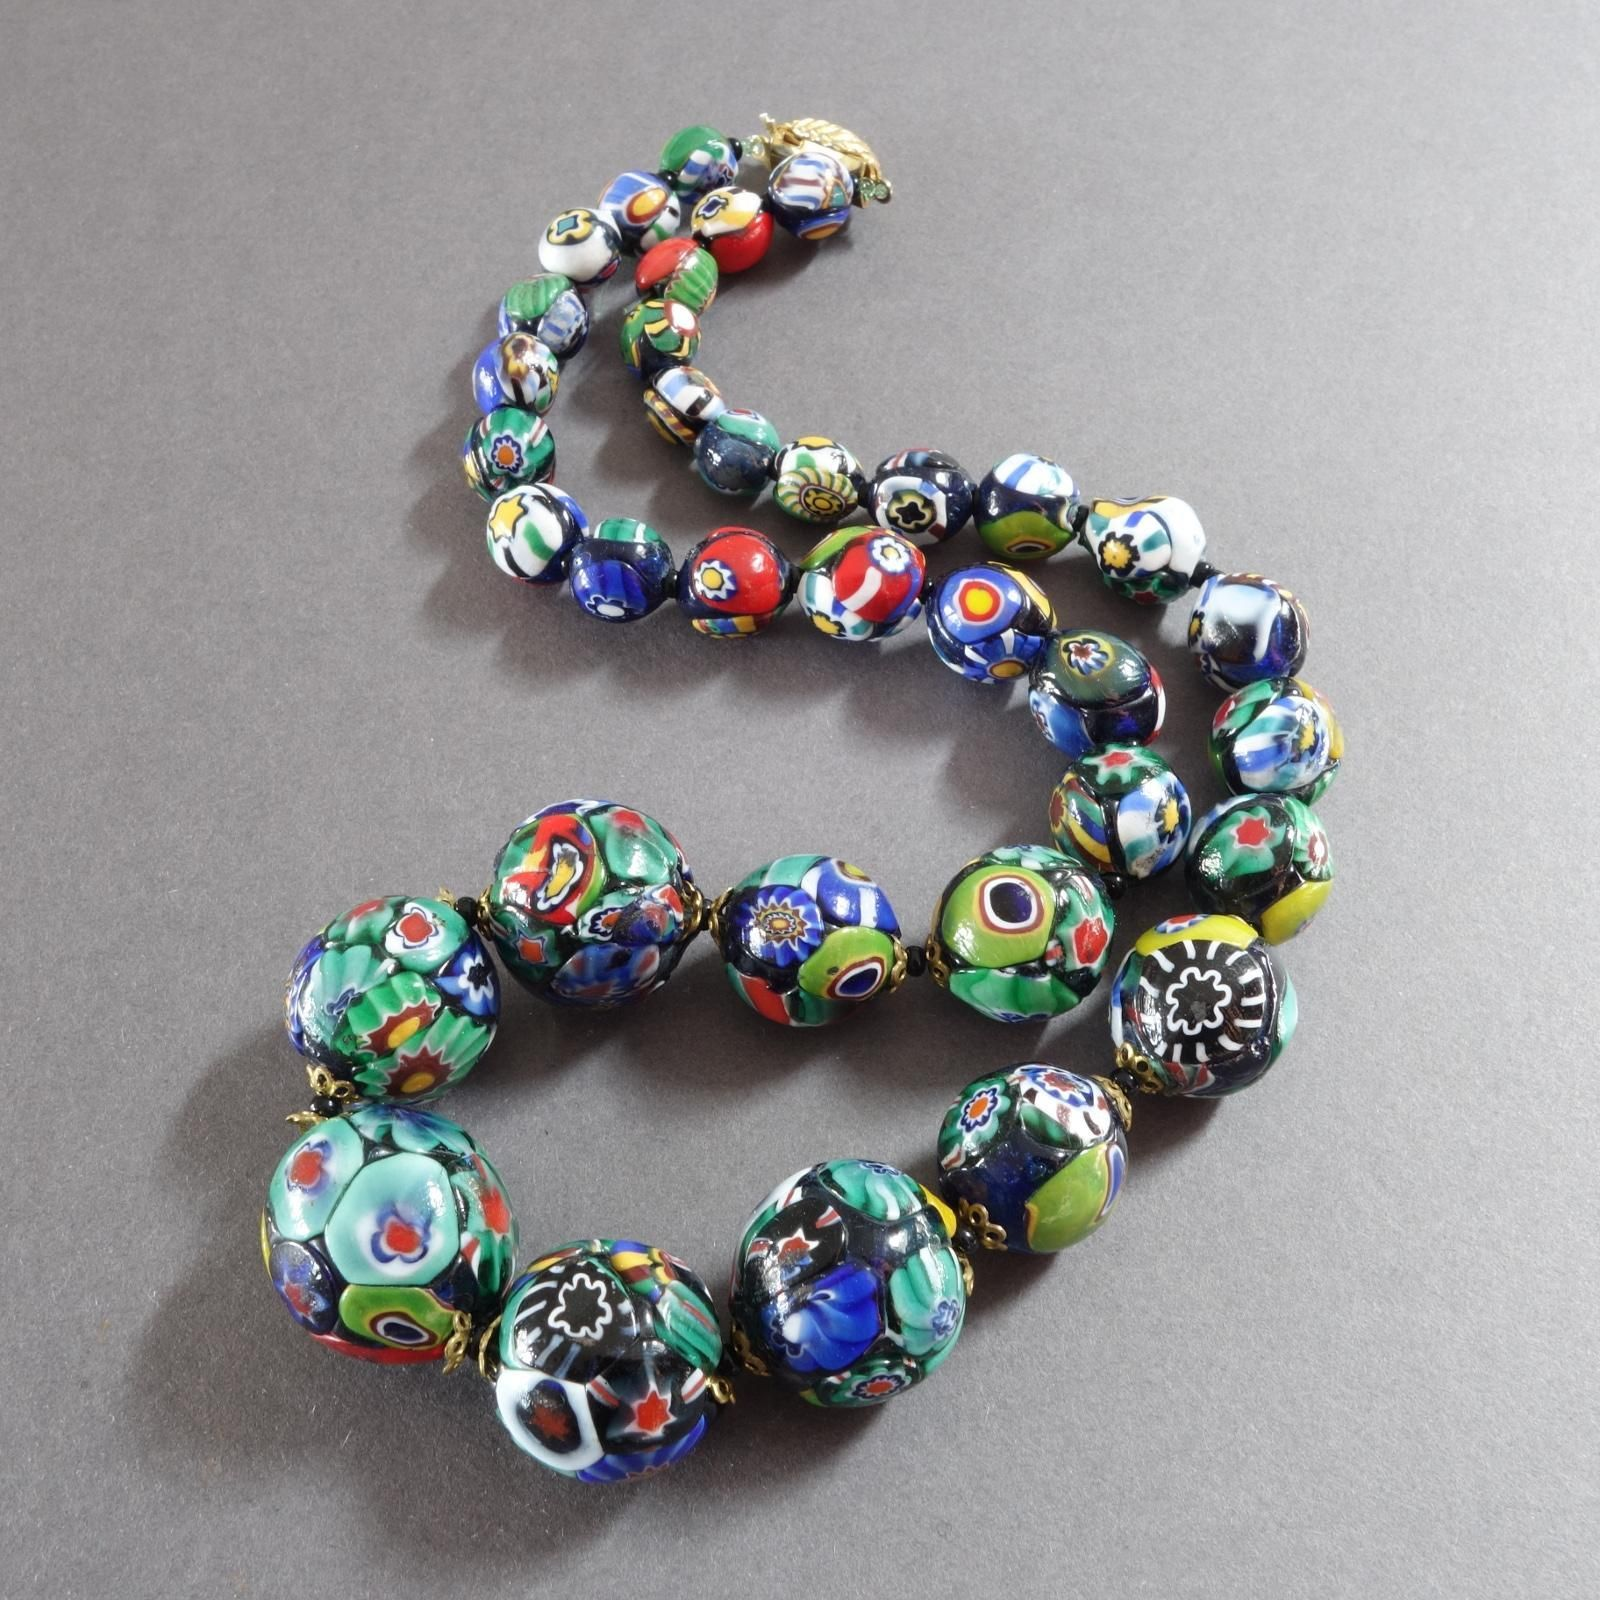 festival necklace seed bead necklace Millefiori necklace beaded necklace millefiori beads